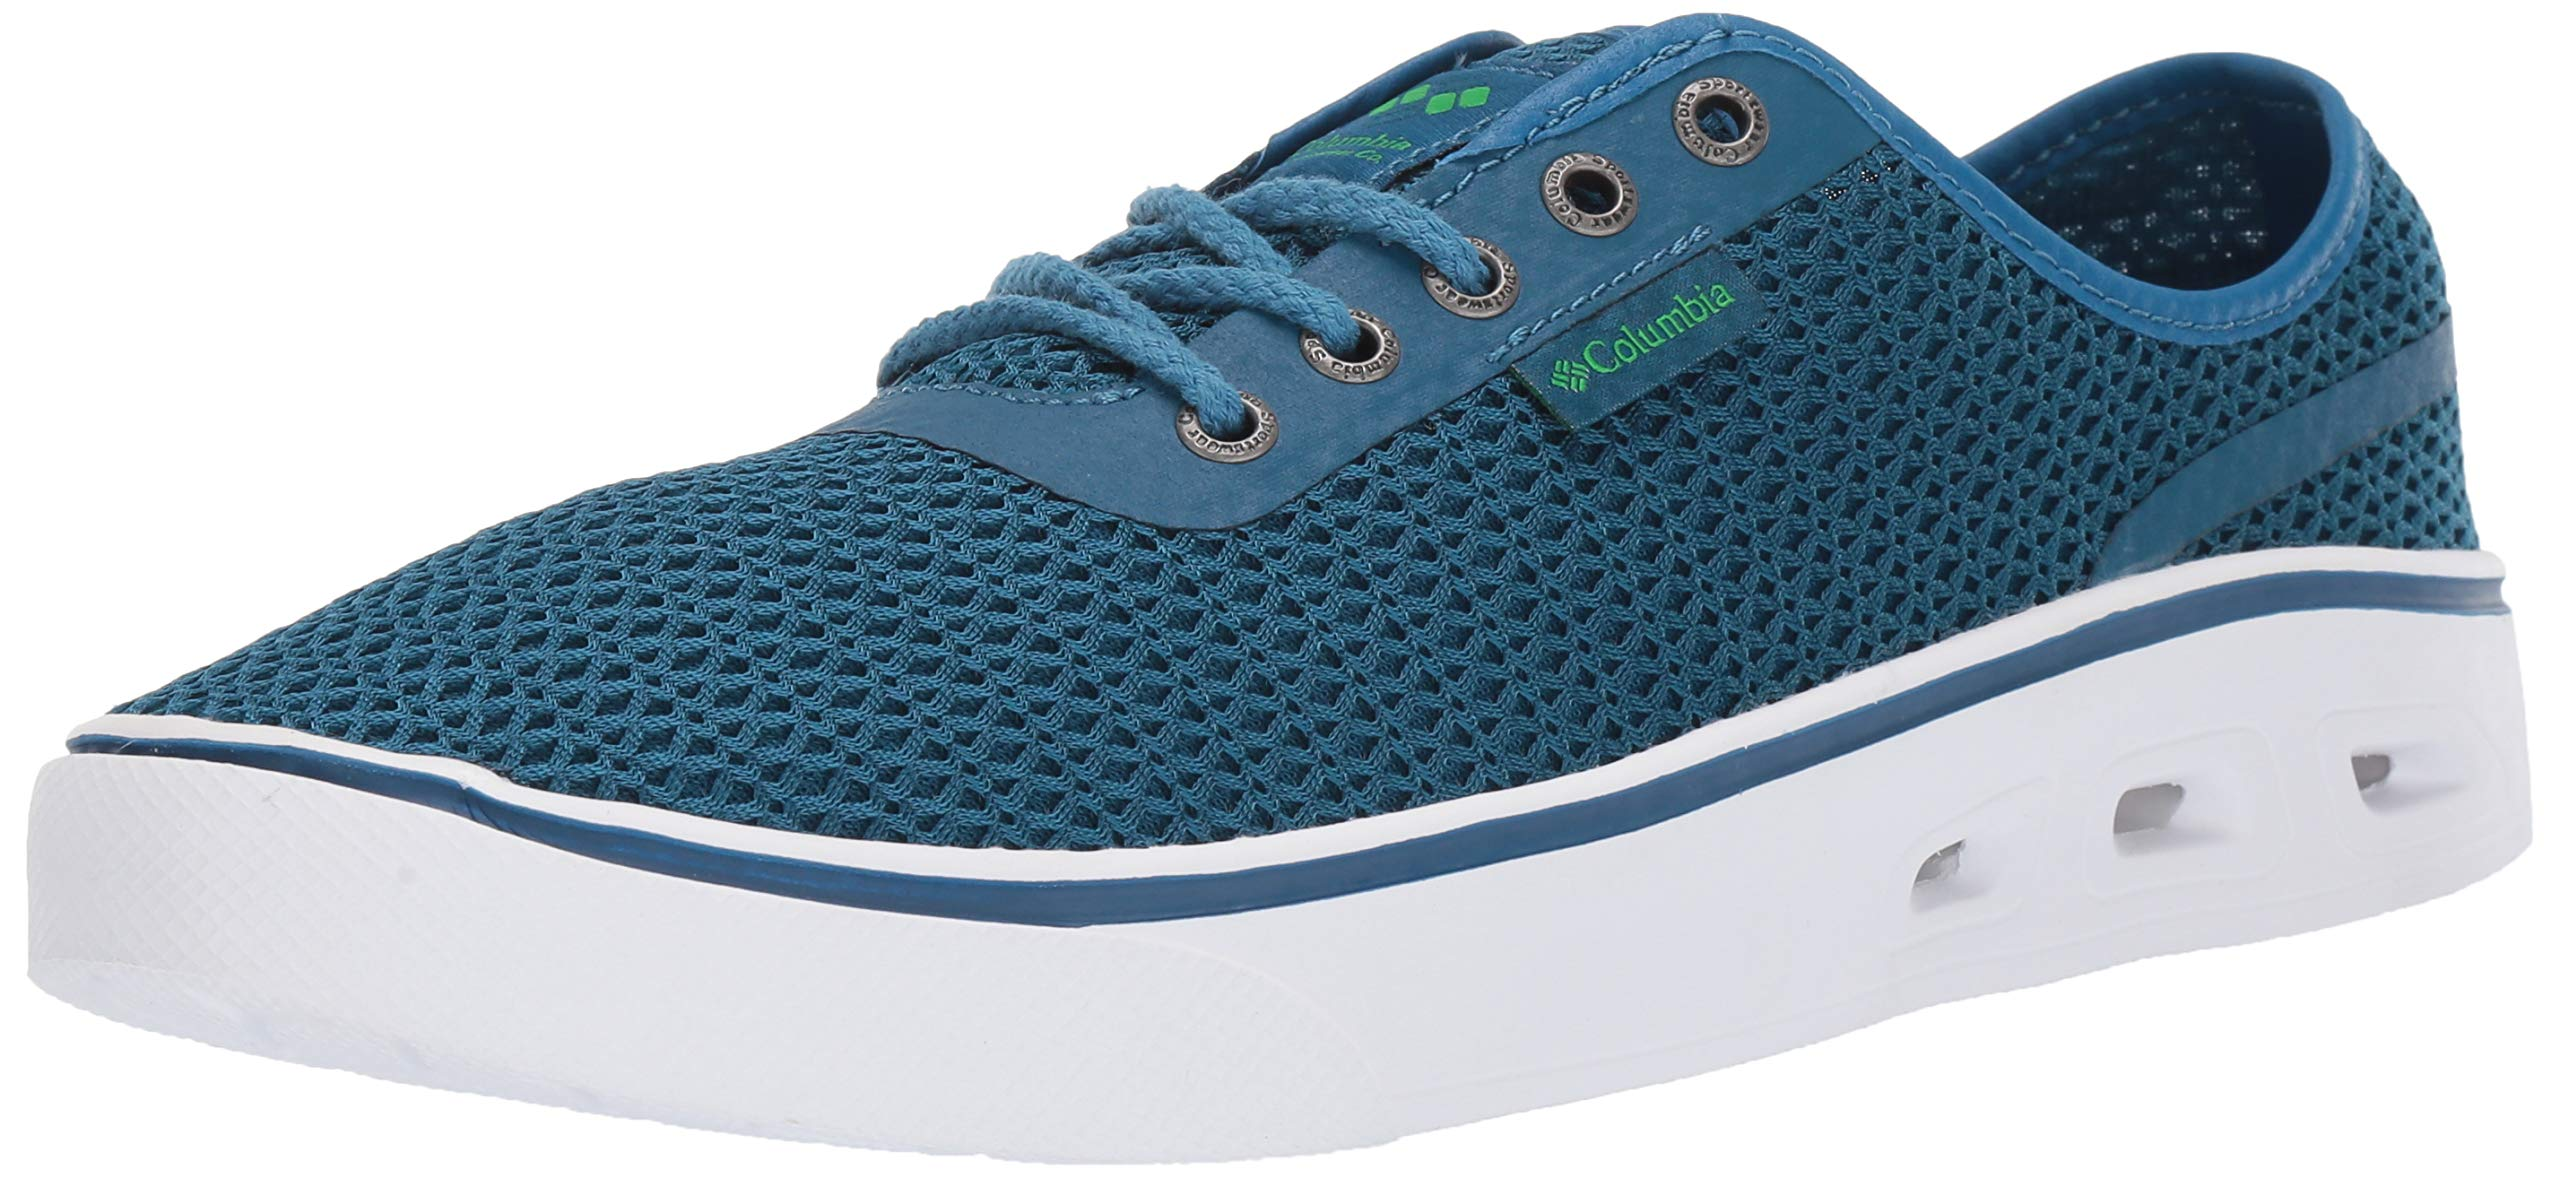 Columbia Men's Spinner Vent Boat Shoe, Phoenix Blue, Clean Green, 10 Regular US by Columbia